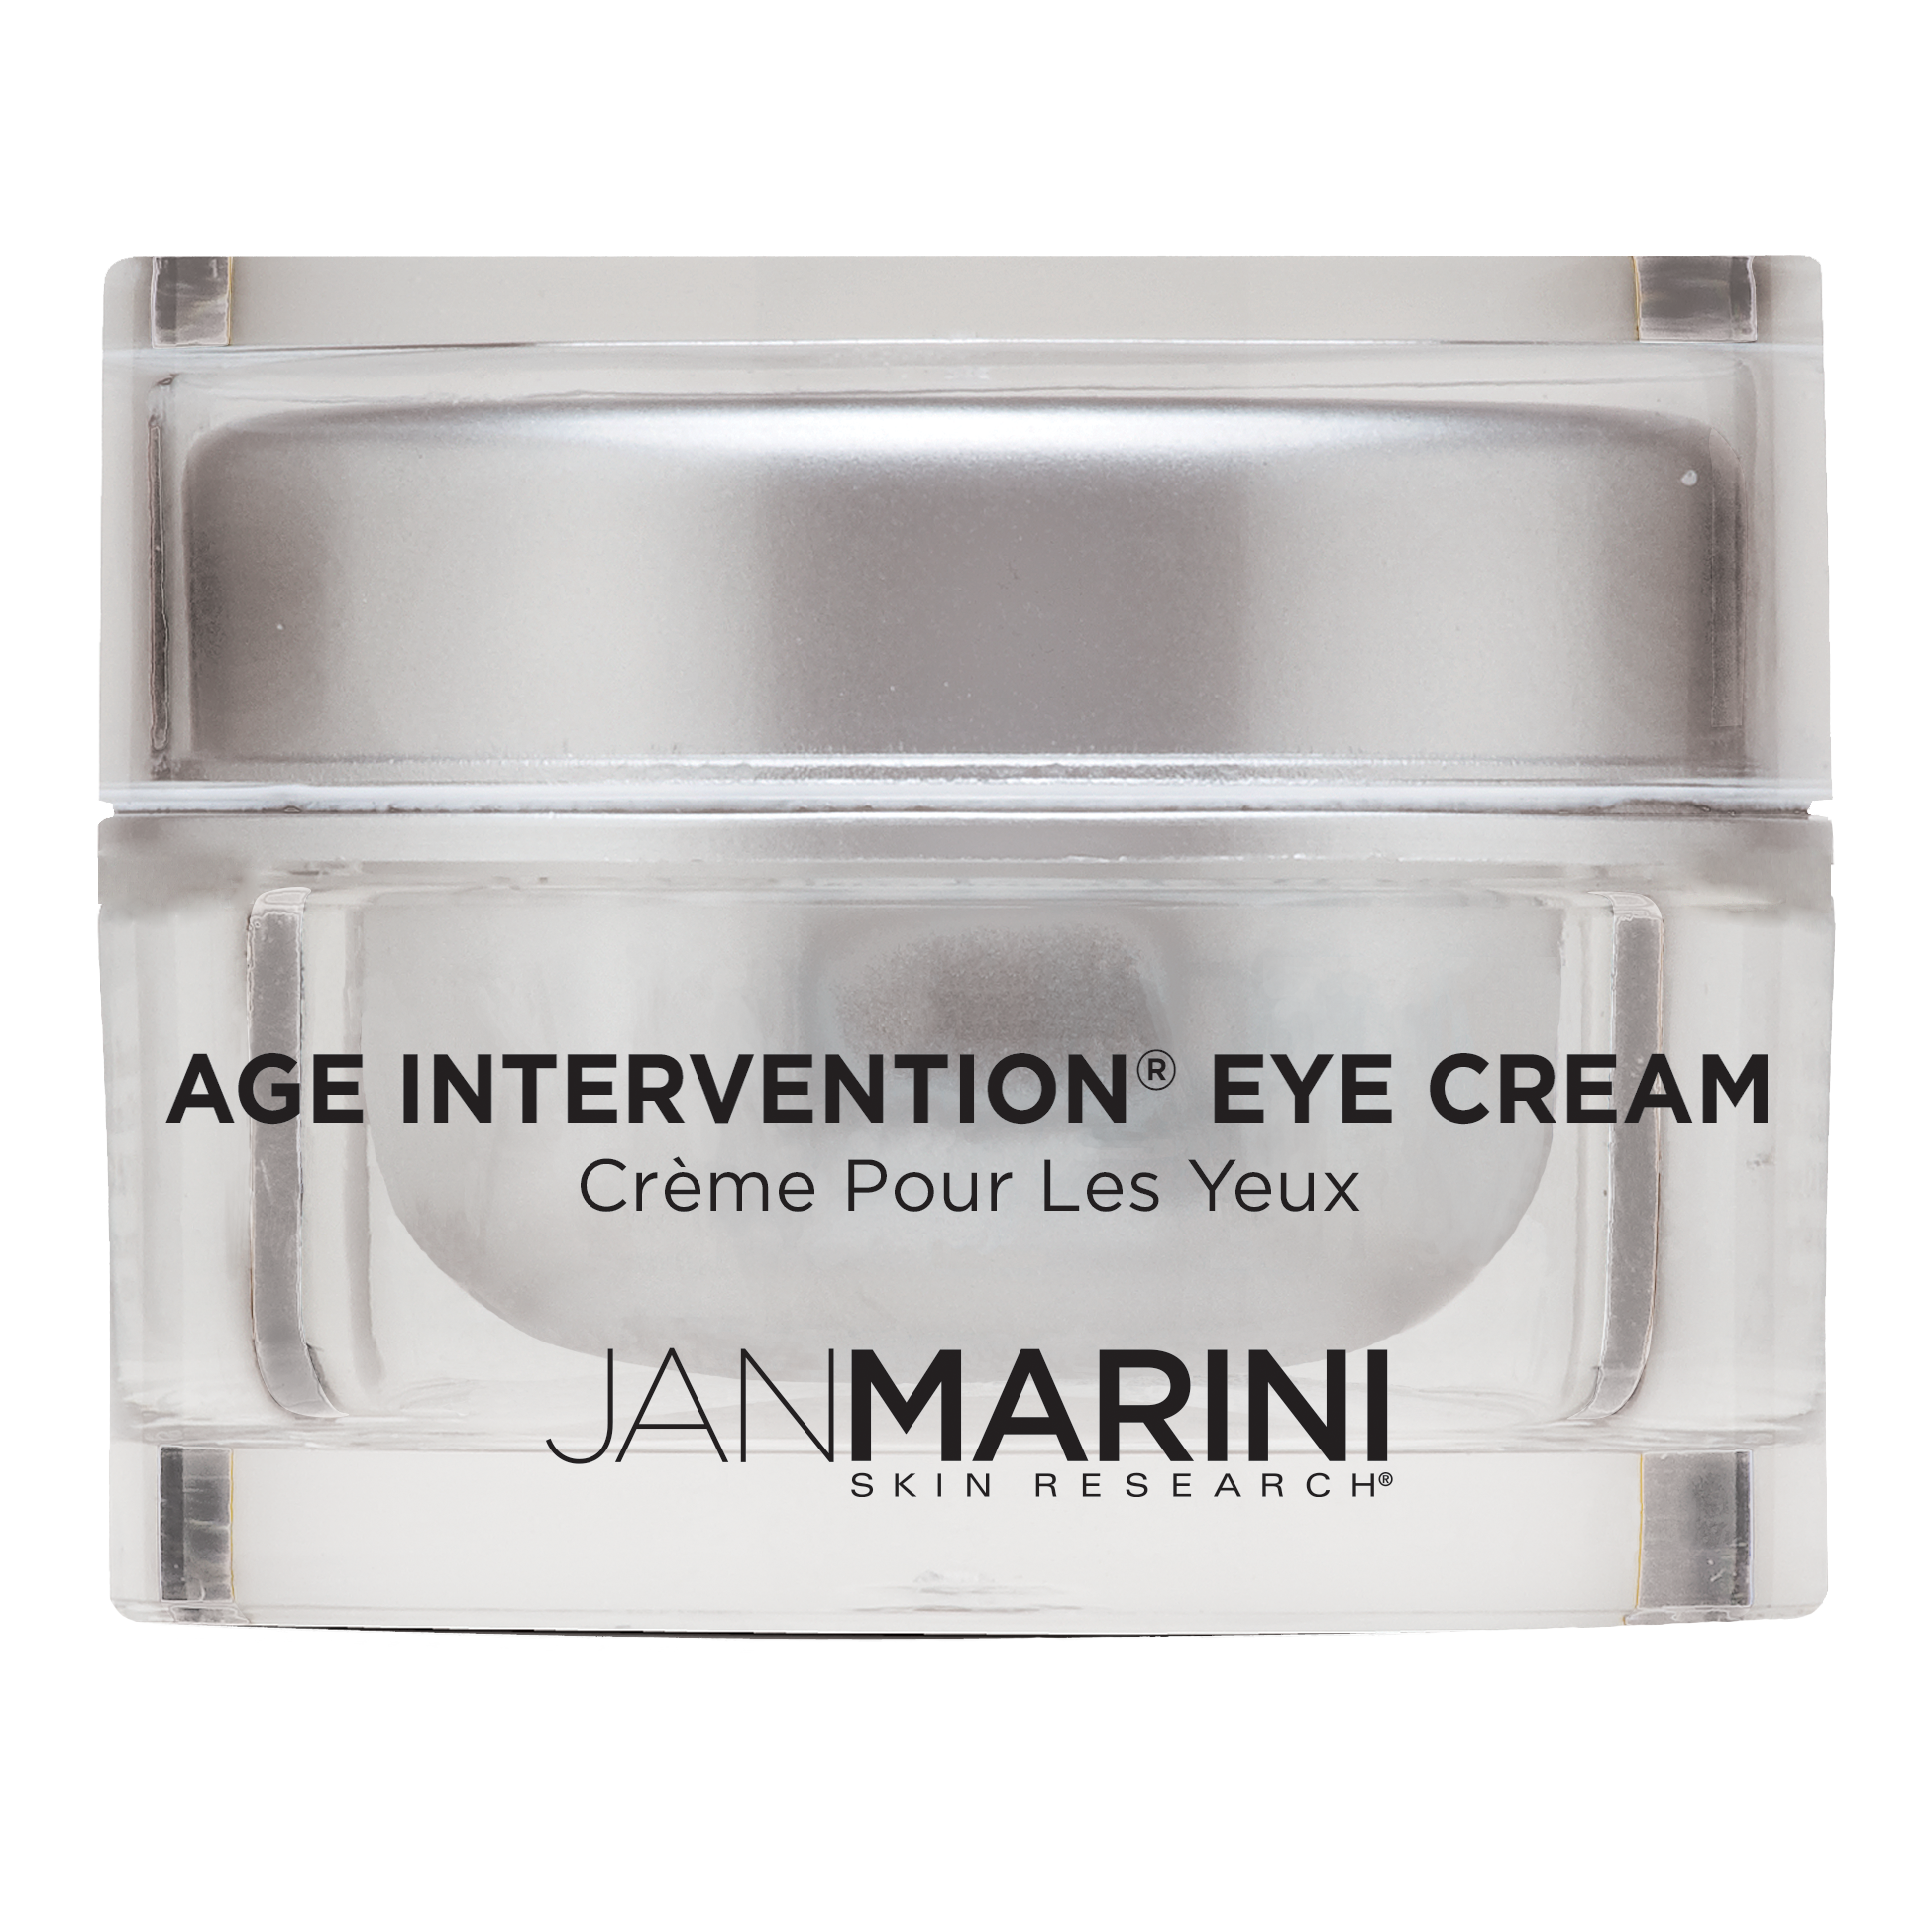 Product Images_HiRes_Age_Intervention_Eye_Cream_HiRes.png